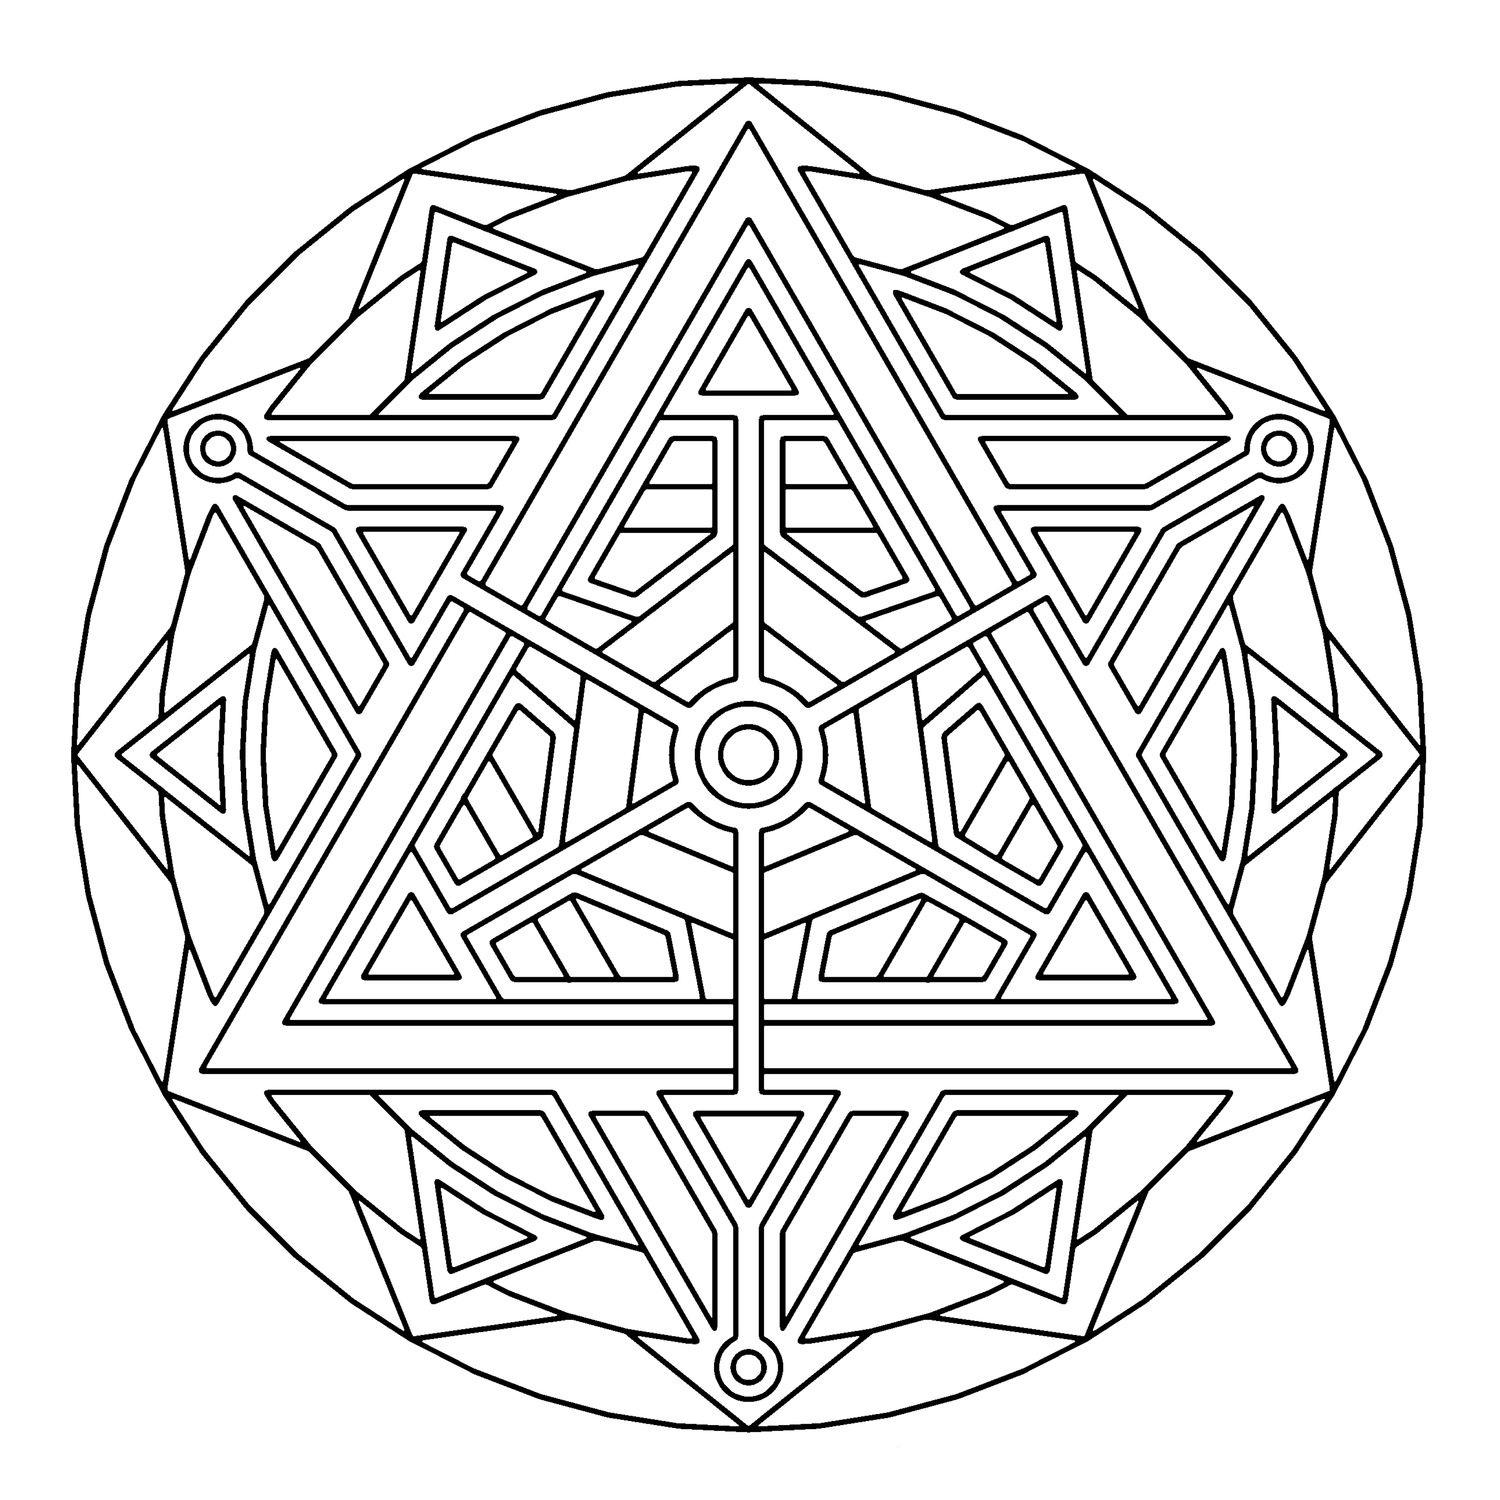 Teleport_geometry_coloring_pages.jpg | Mandalas to color | Pinterest ...